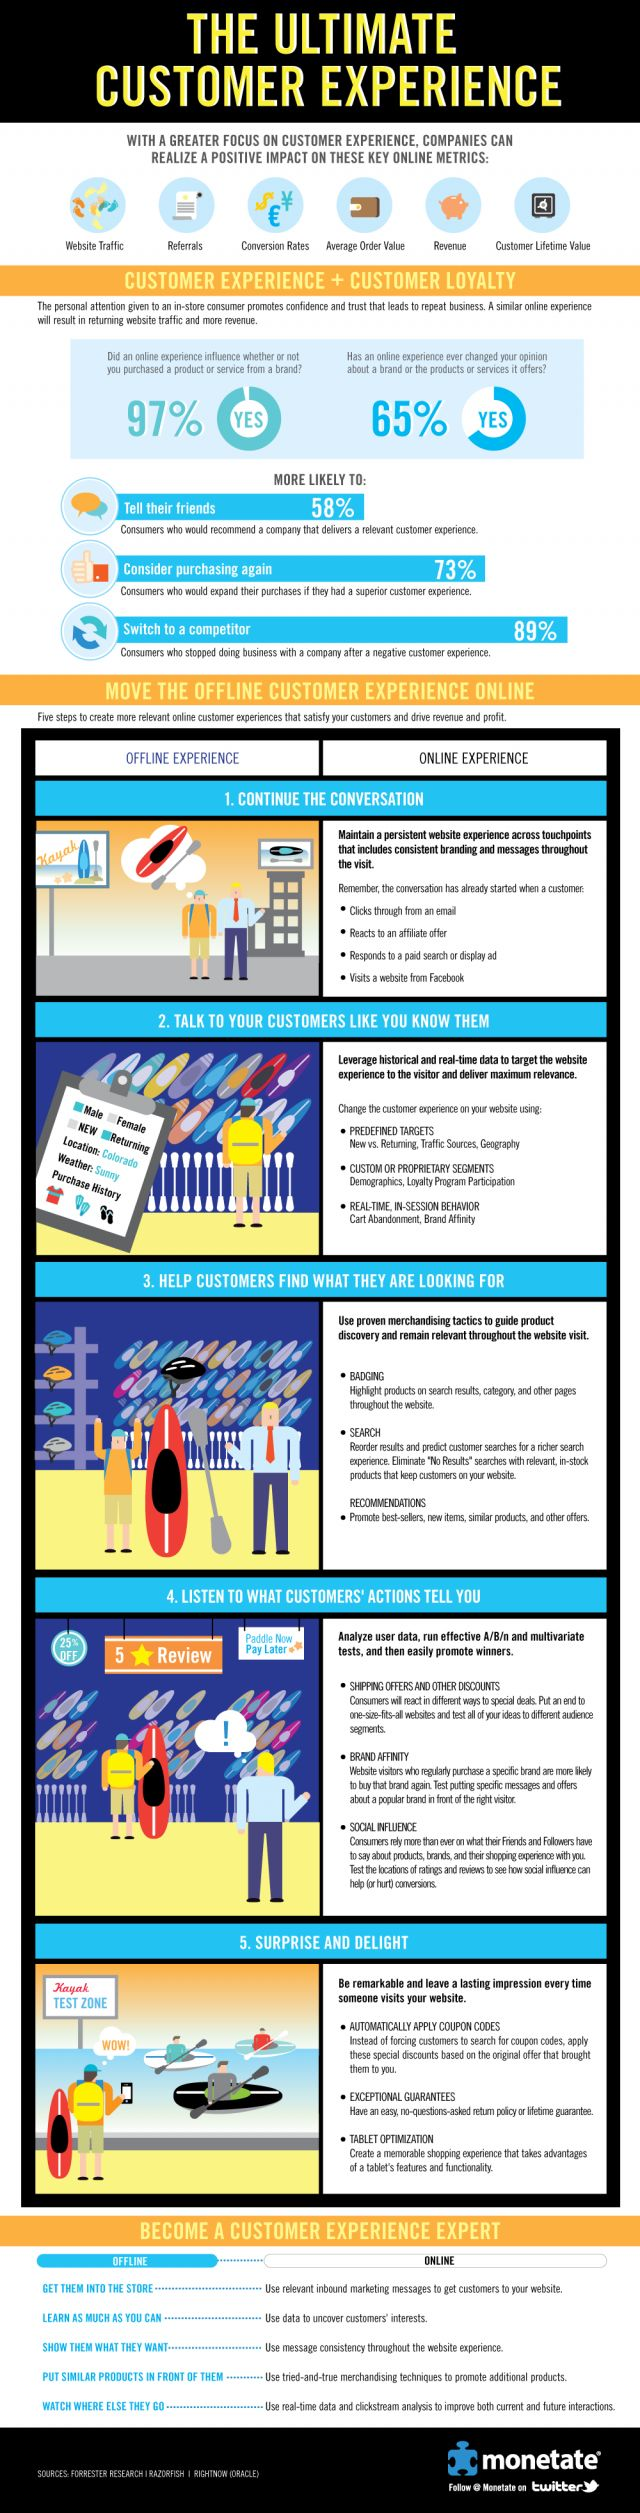 Ultimate Customer Infographic: Customer Experience, Social Media, Consumers Expect, Infographics, Customer Service, Business, Ultimate Customer